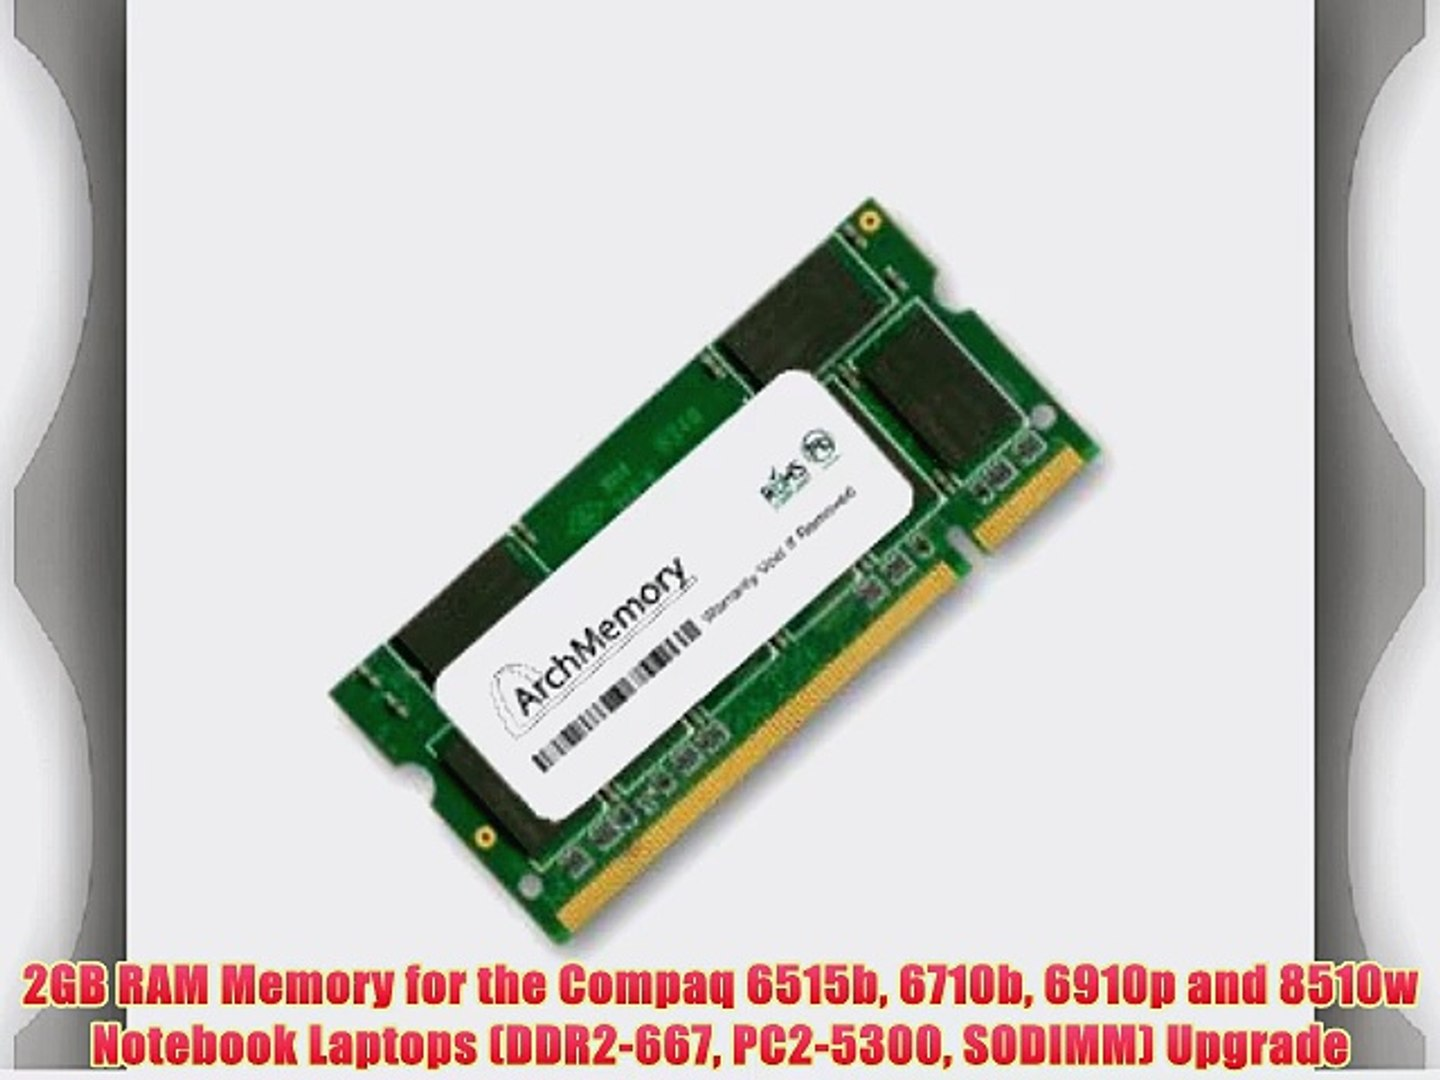 2GB RAM Memory for the Compaq 6515b 6710b 6910p and 8510w Notebook Laptops (DDR2-667 PC2-5300